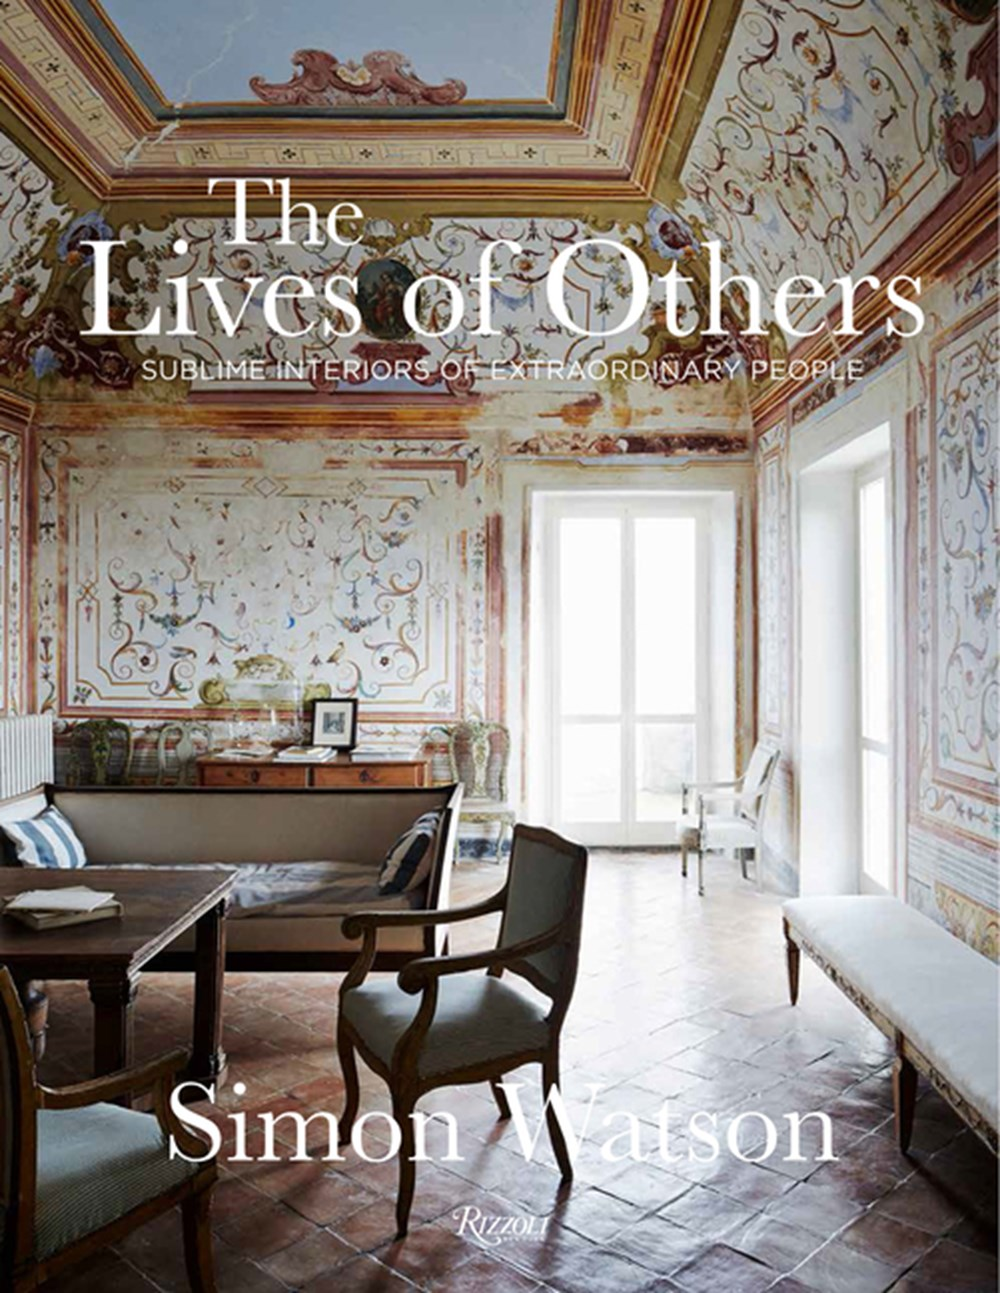 Lives of Others Sublime Interiors of Extraordinary People